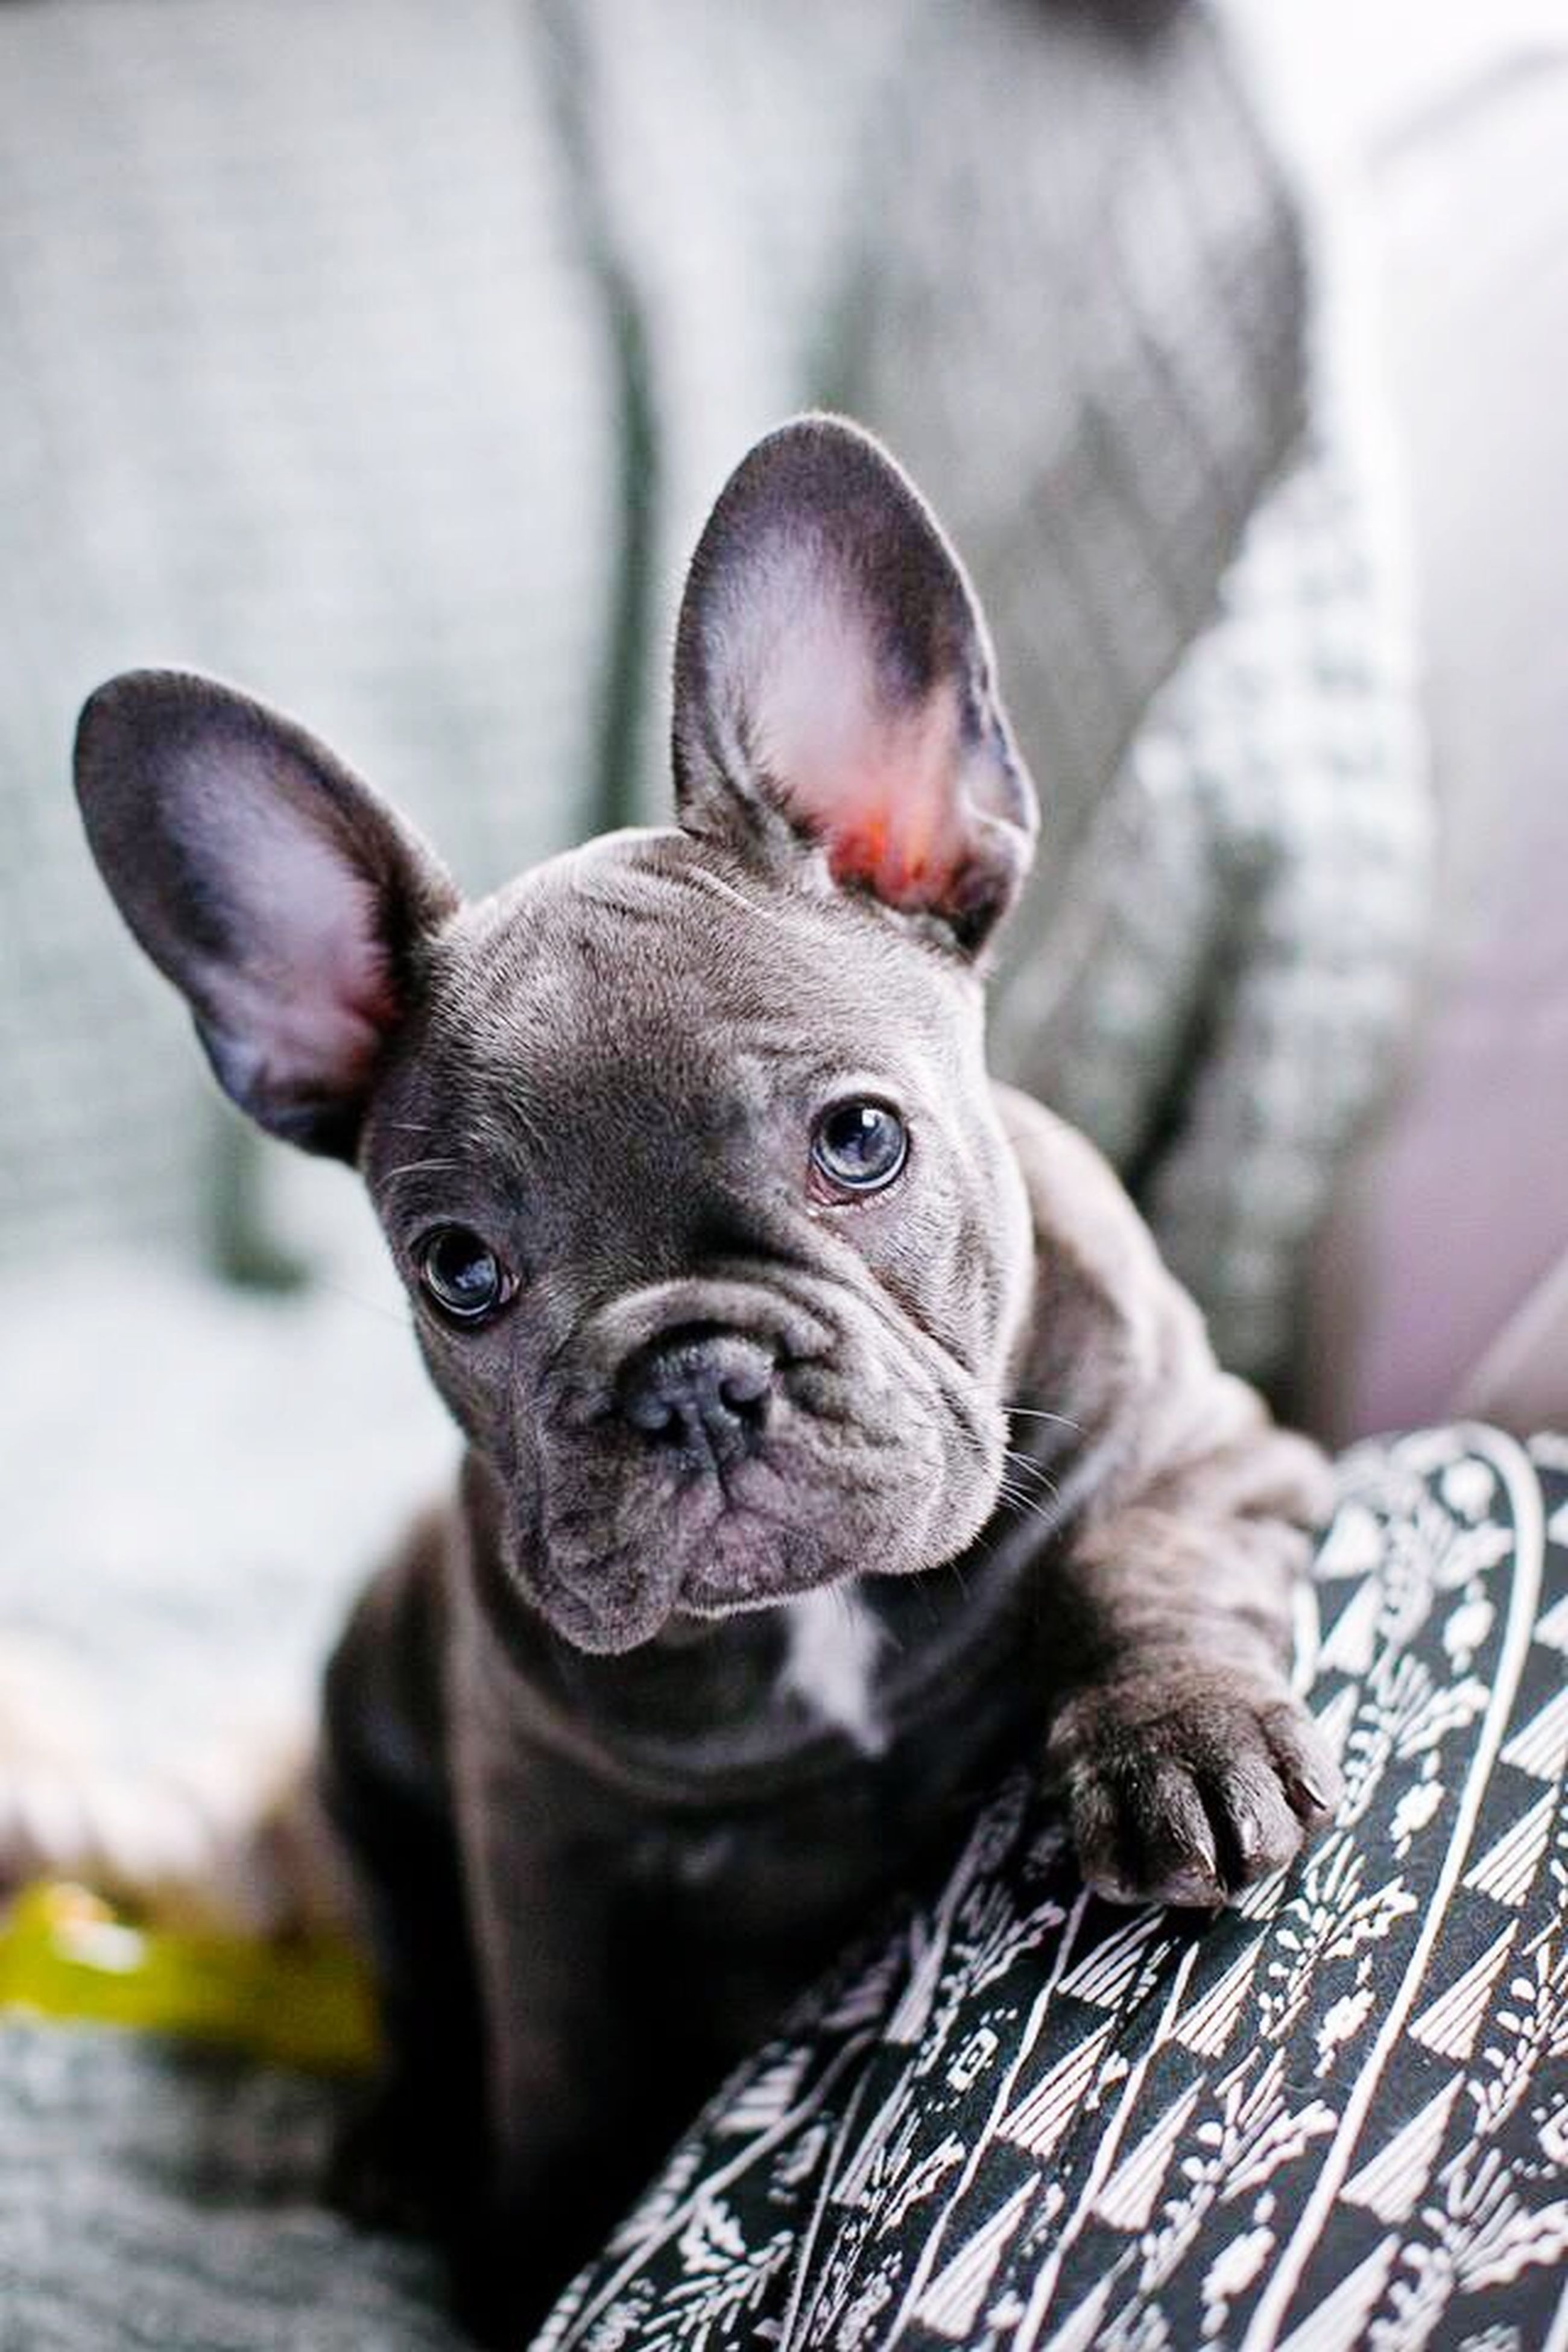 animal themes, one animal, pets, indoors, focus on foreground, domestic animals, portrait, looking at camera, dog, close-up, mammal, animal head, home interior, relaxation, black color, bed, animal body part, no people, lying down, day